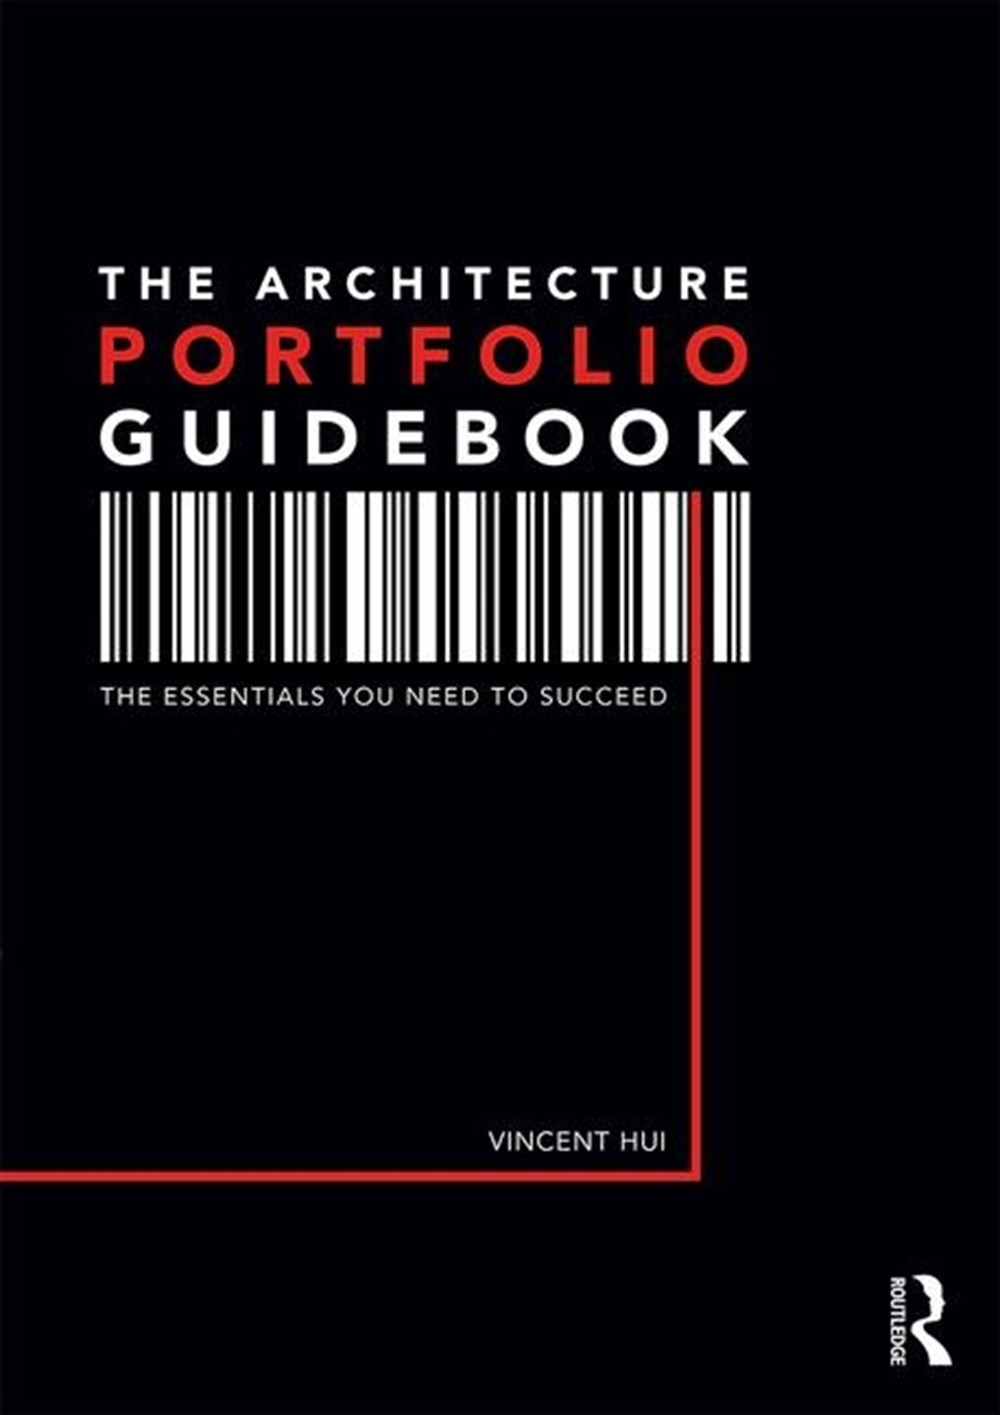 Architecture Portfolio Guidebook The Essentials You Need to Succeed